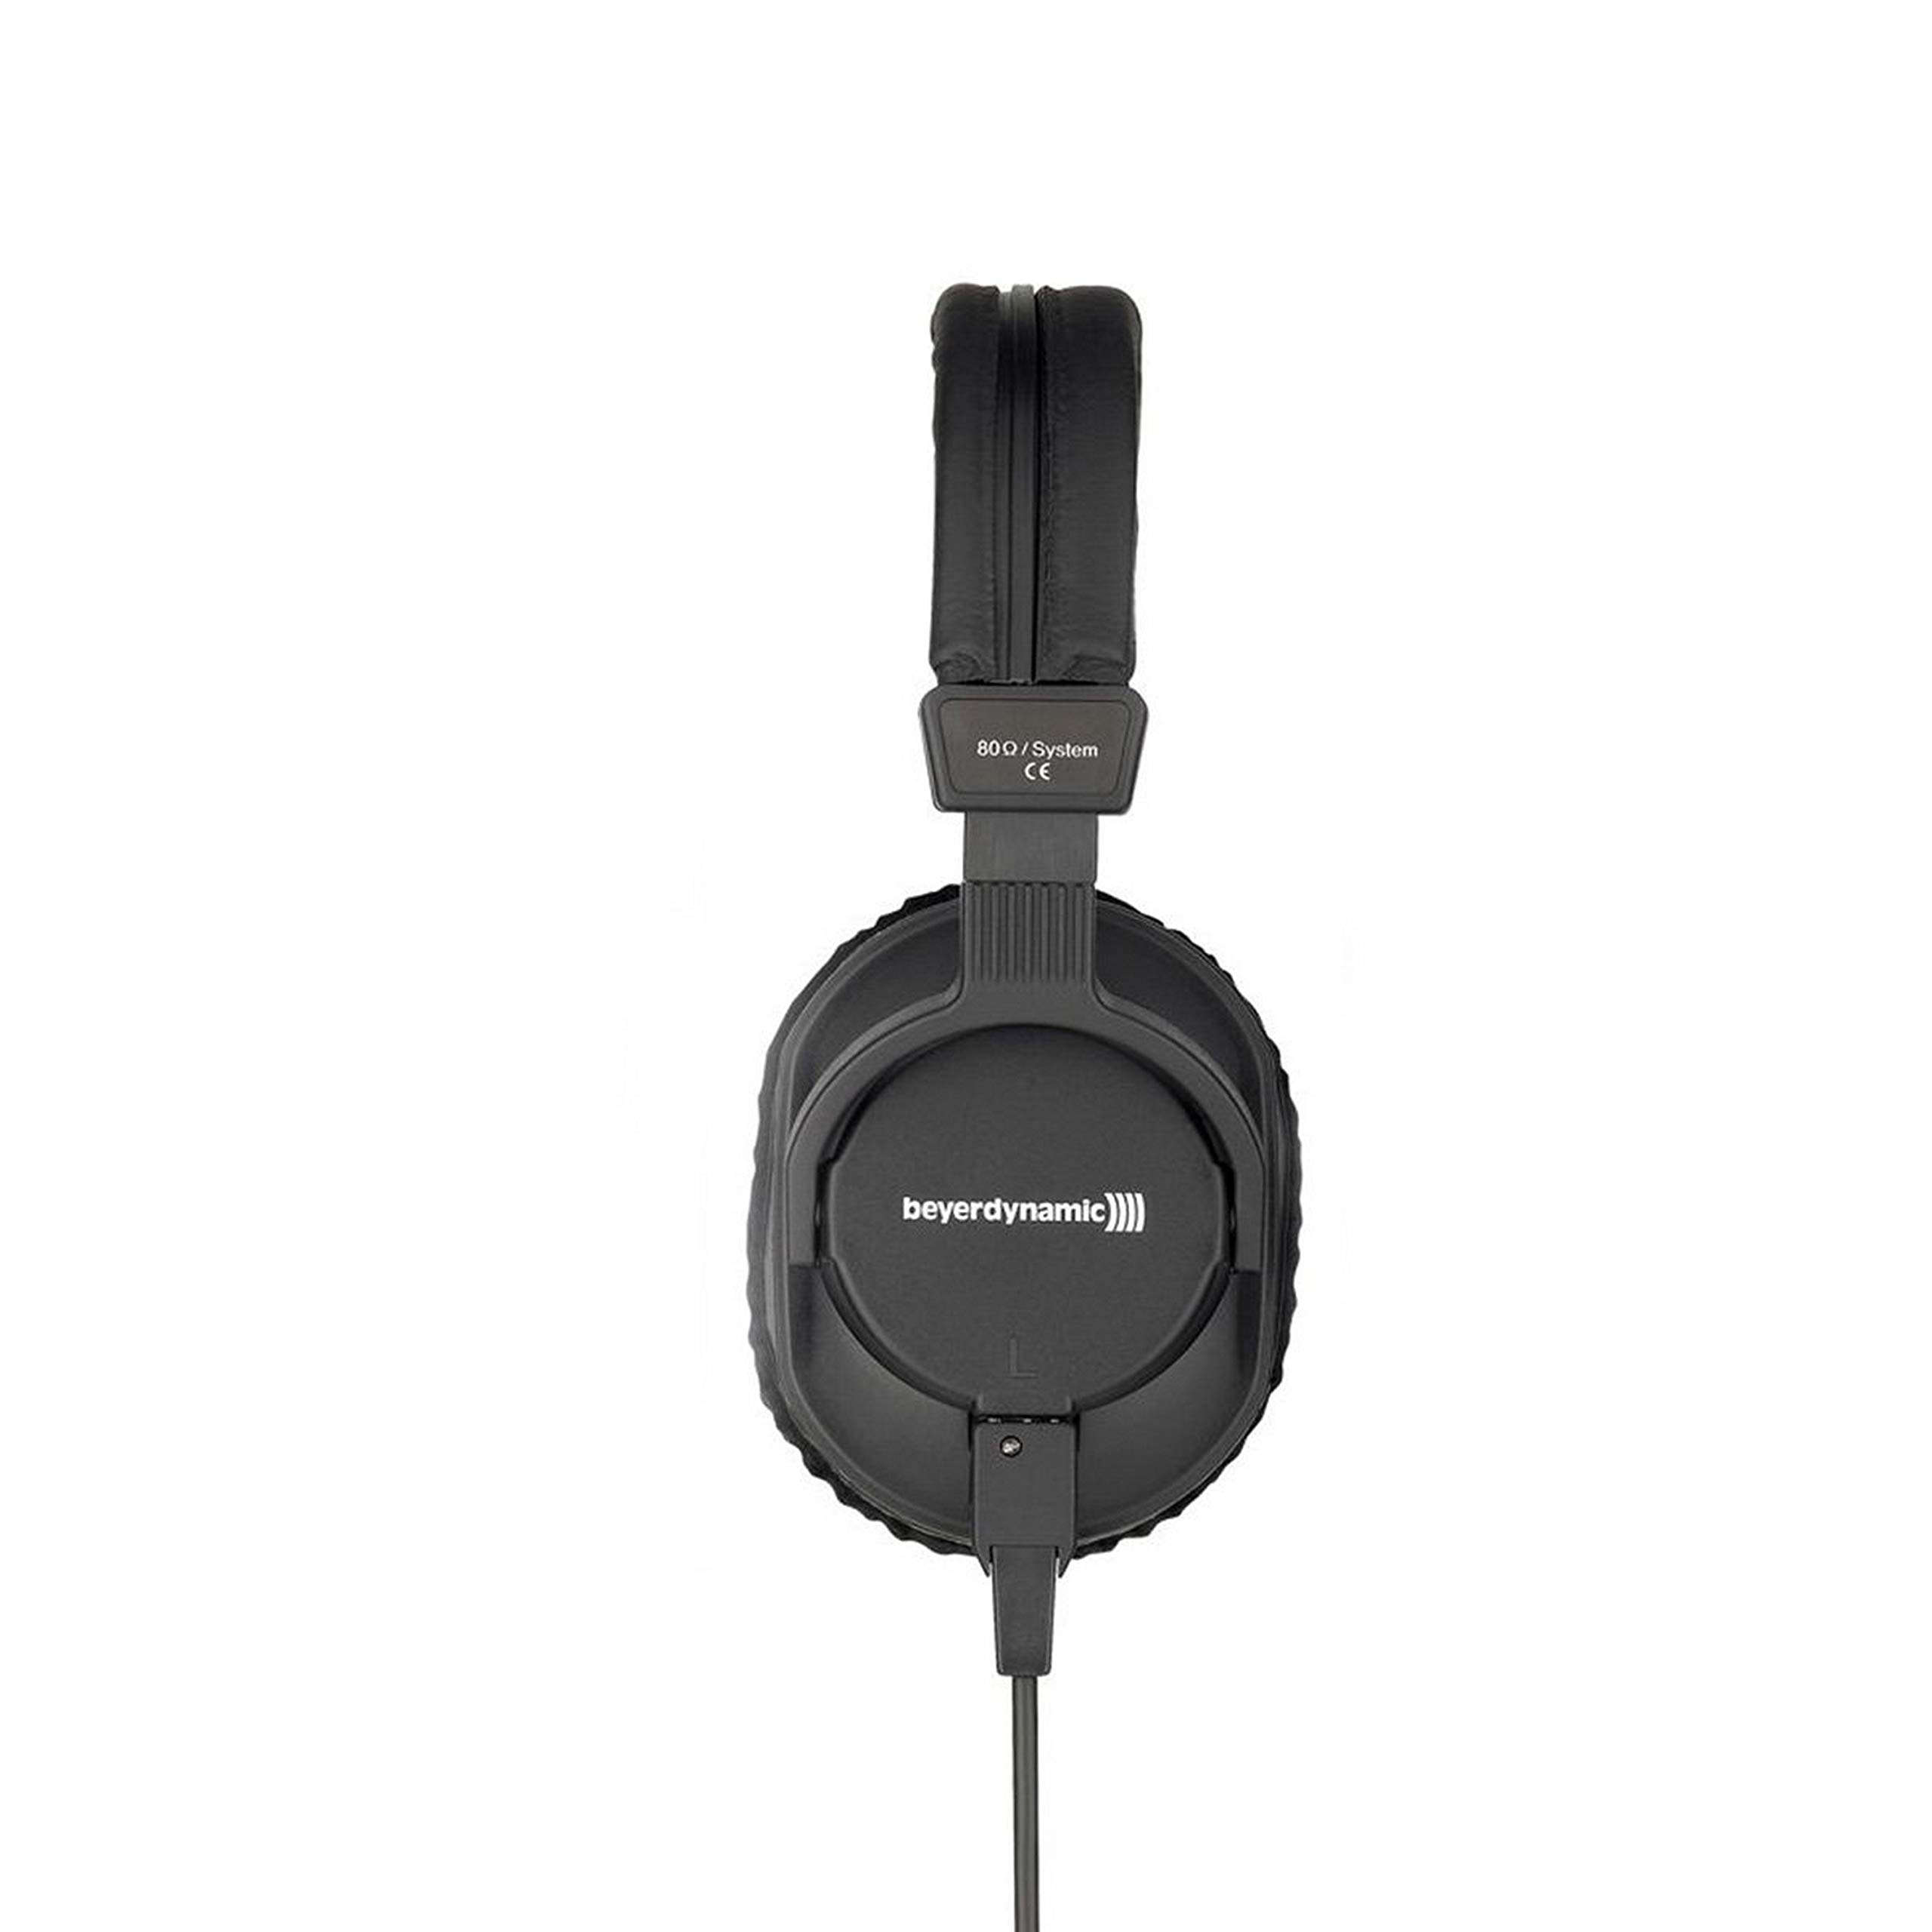 Beyerdynamic DT-250-250OHM Lightweight Closed Dynamic Headphone for Broadcast and Recording Applications, 250 Ohms by beyerdynamic (Image #2)